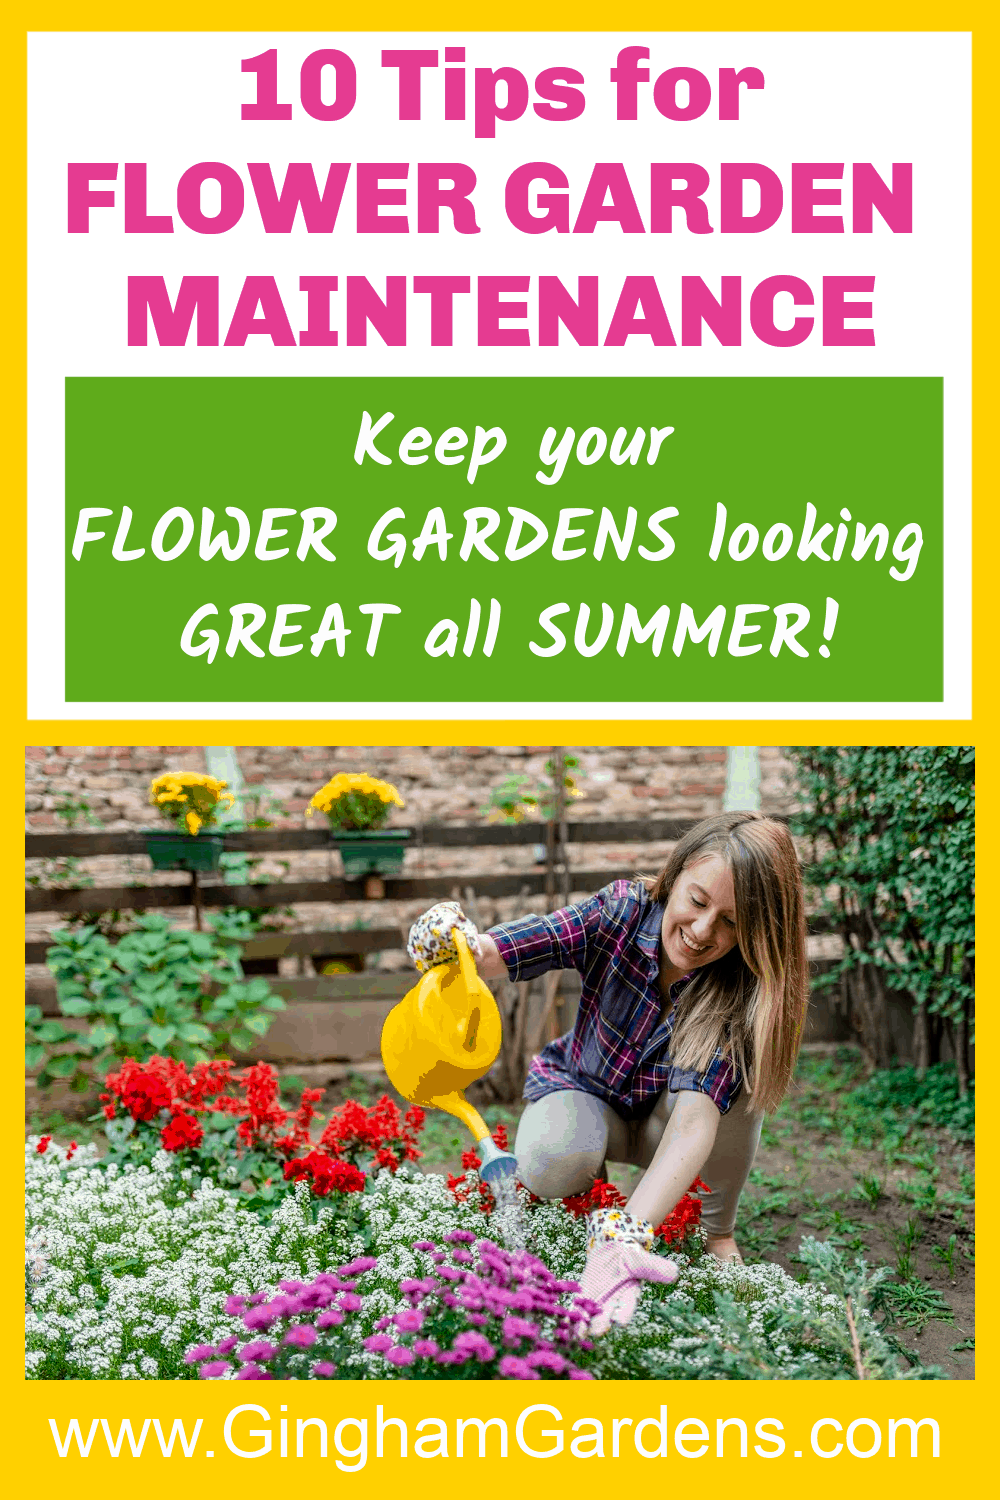 Image of a Gardener with Text Overlay - 10 Tips for Flower Garden Maintenance